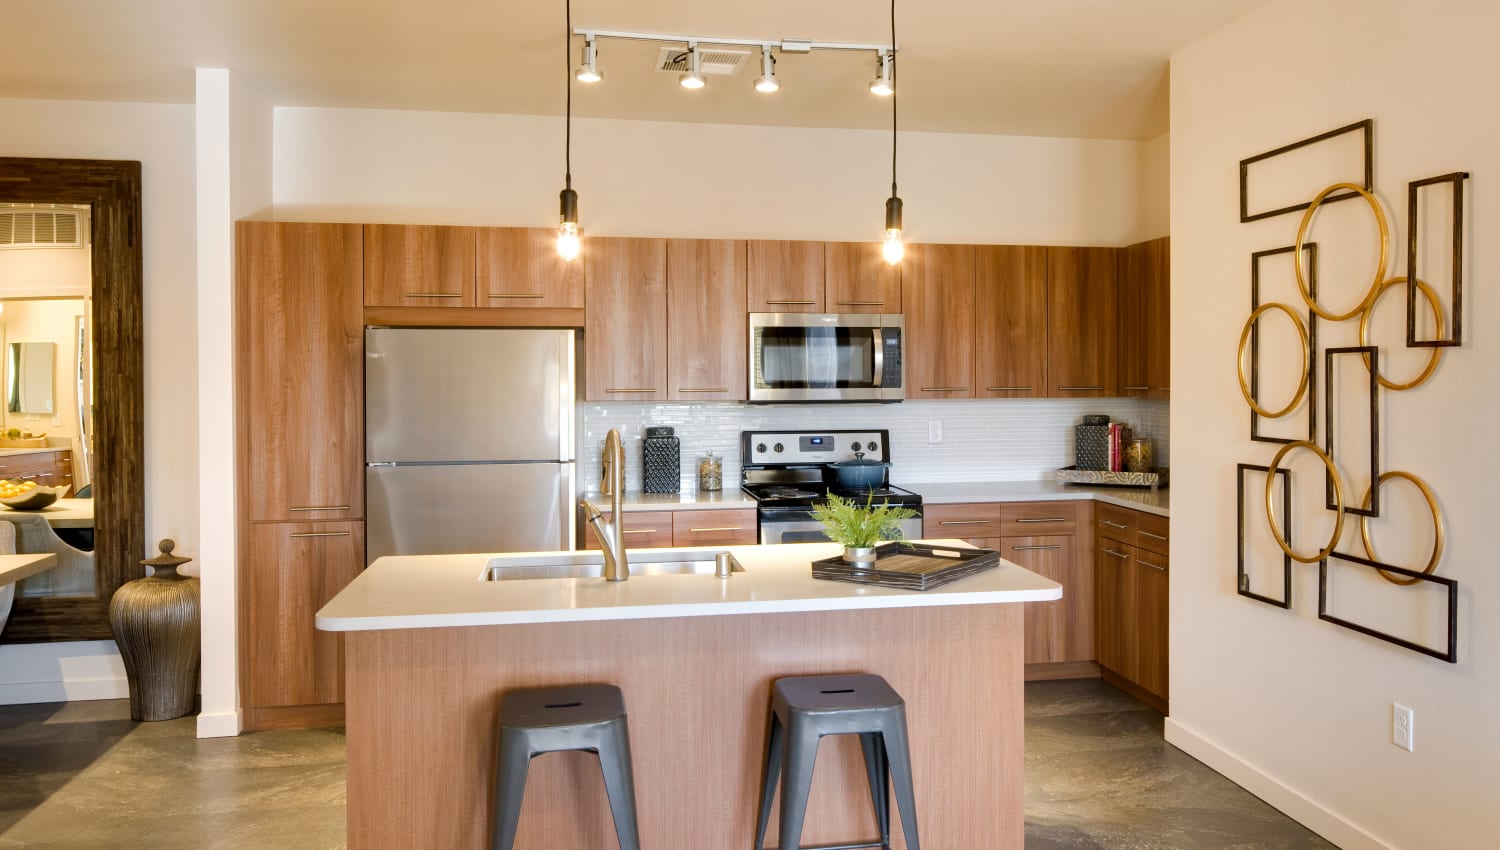 Well-lit kitchen with island seating at Olympus Alameda in Albuquerque, New Mexico